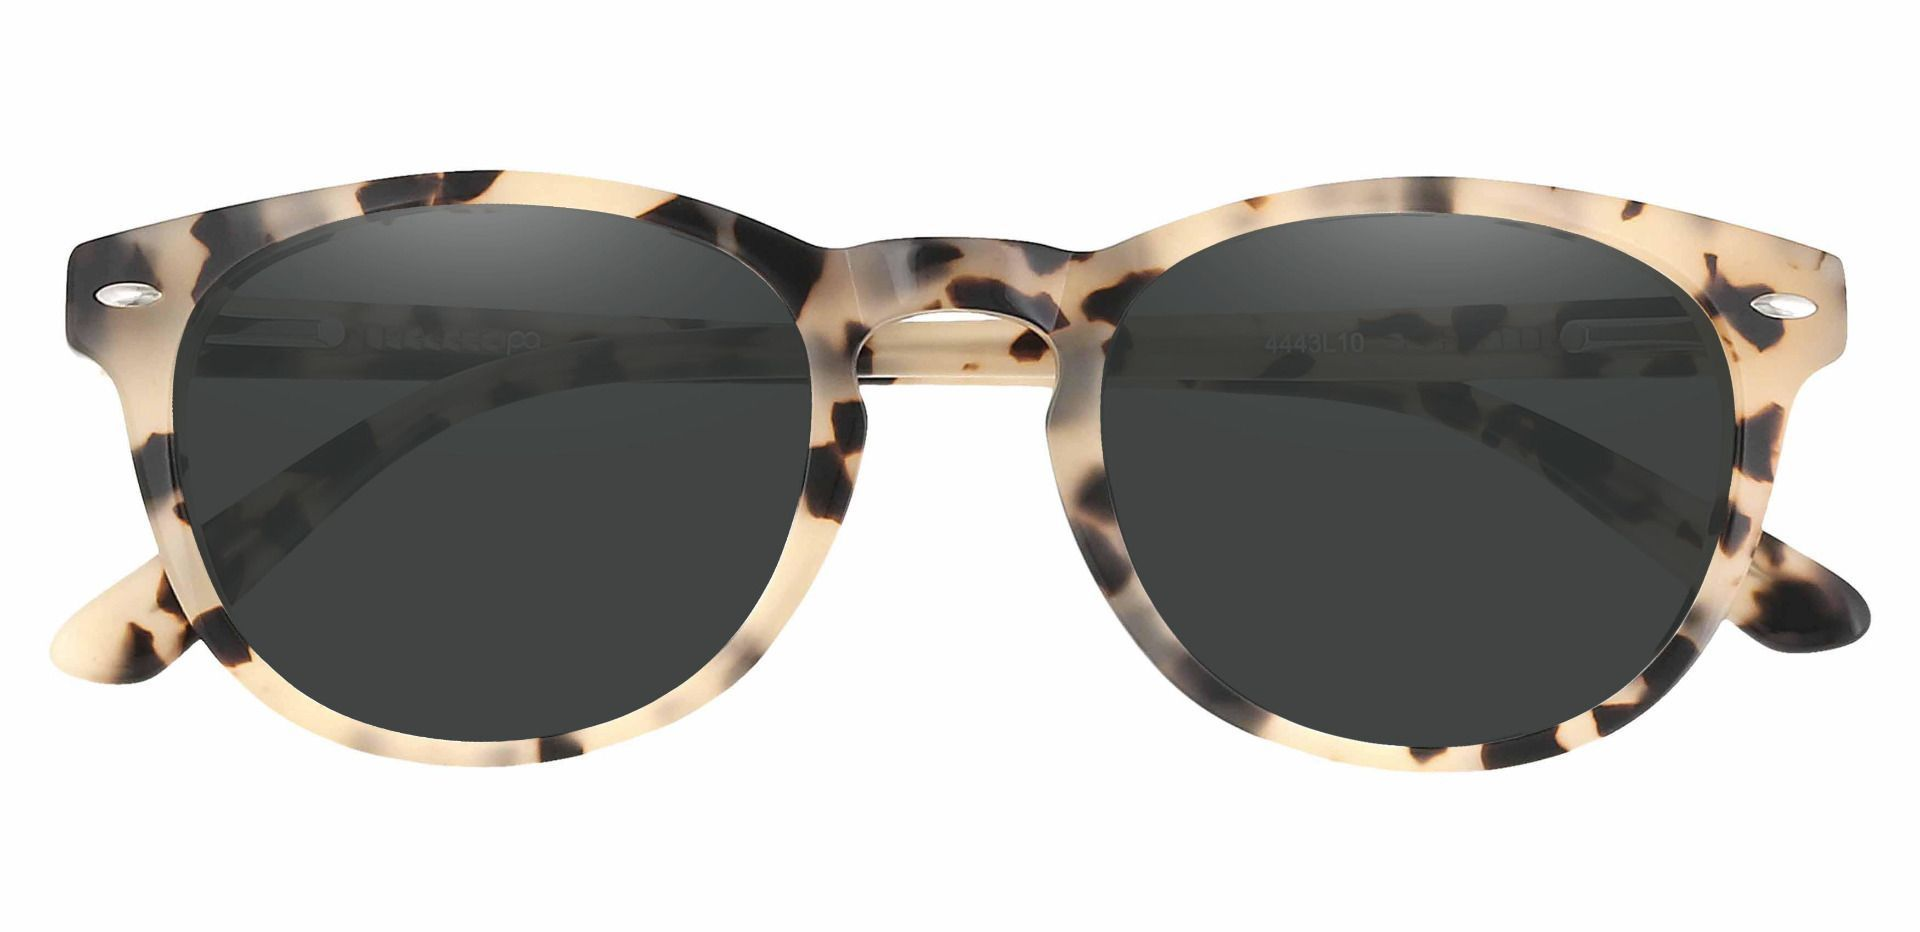 Laguna Oval Lined Bifocal Sunglasses - Leopard Frame With Gray Lenses